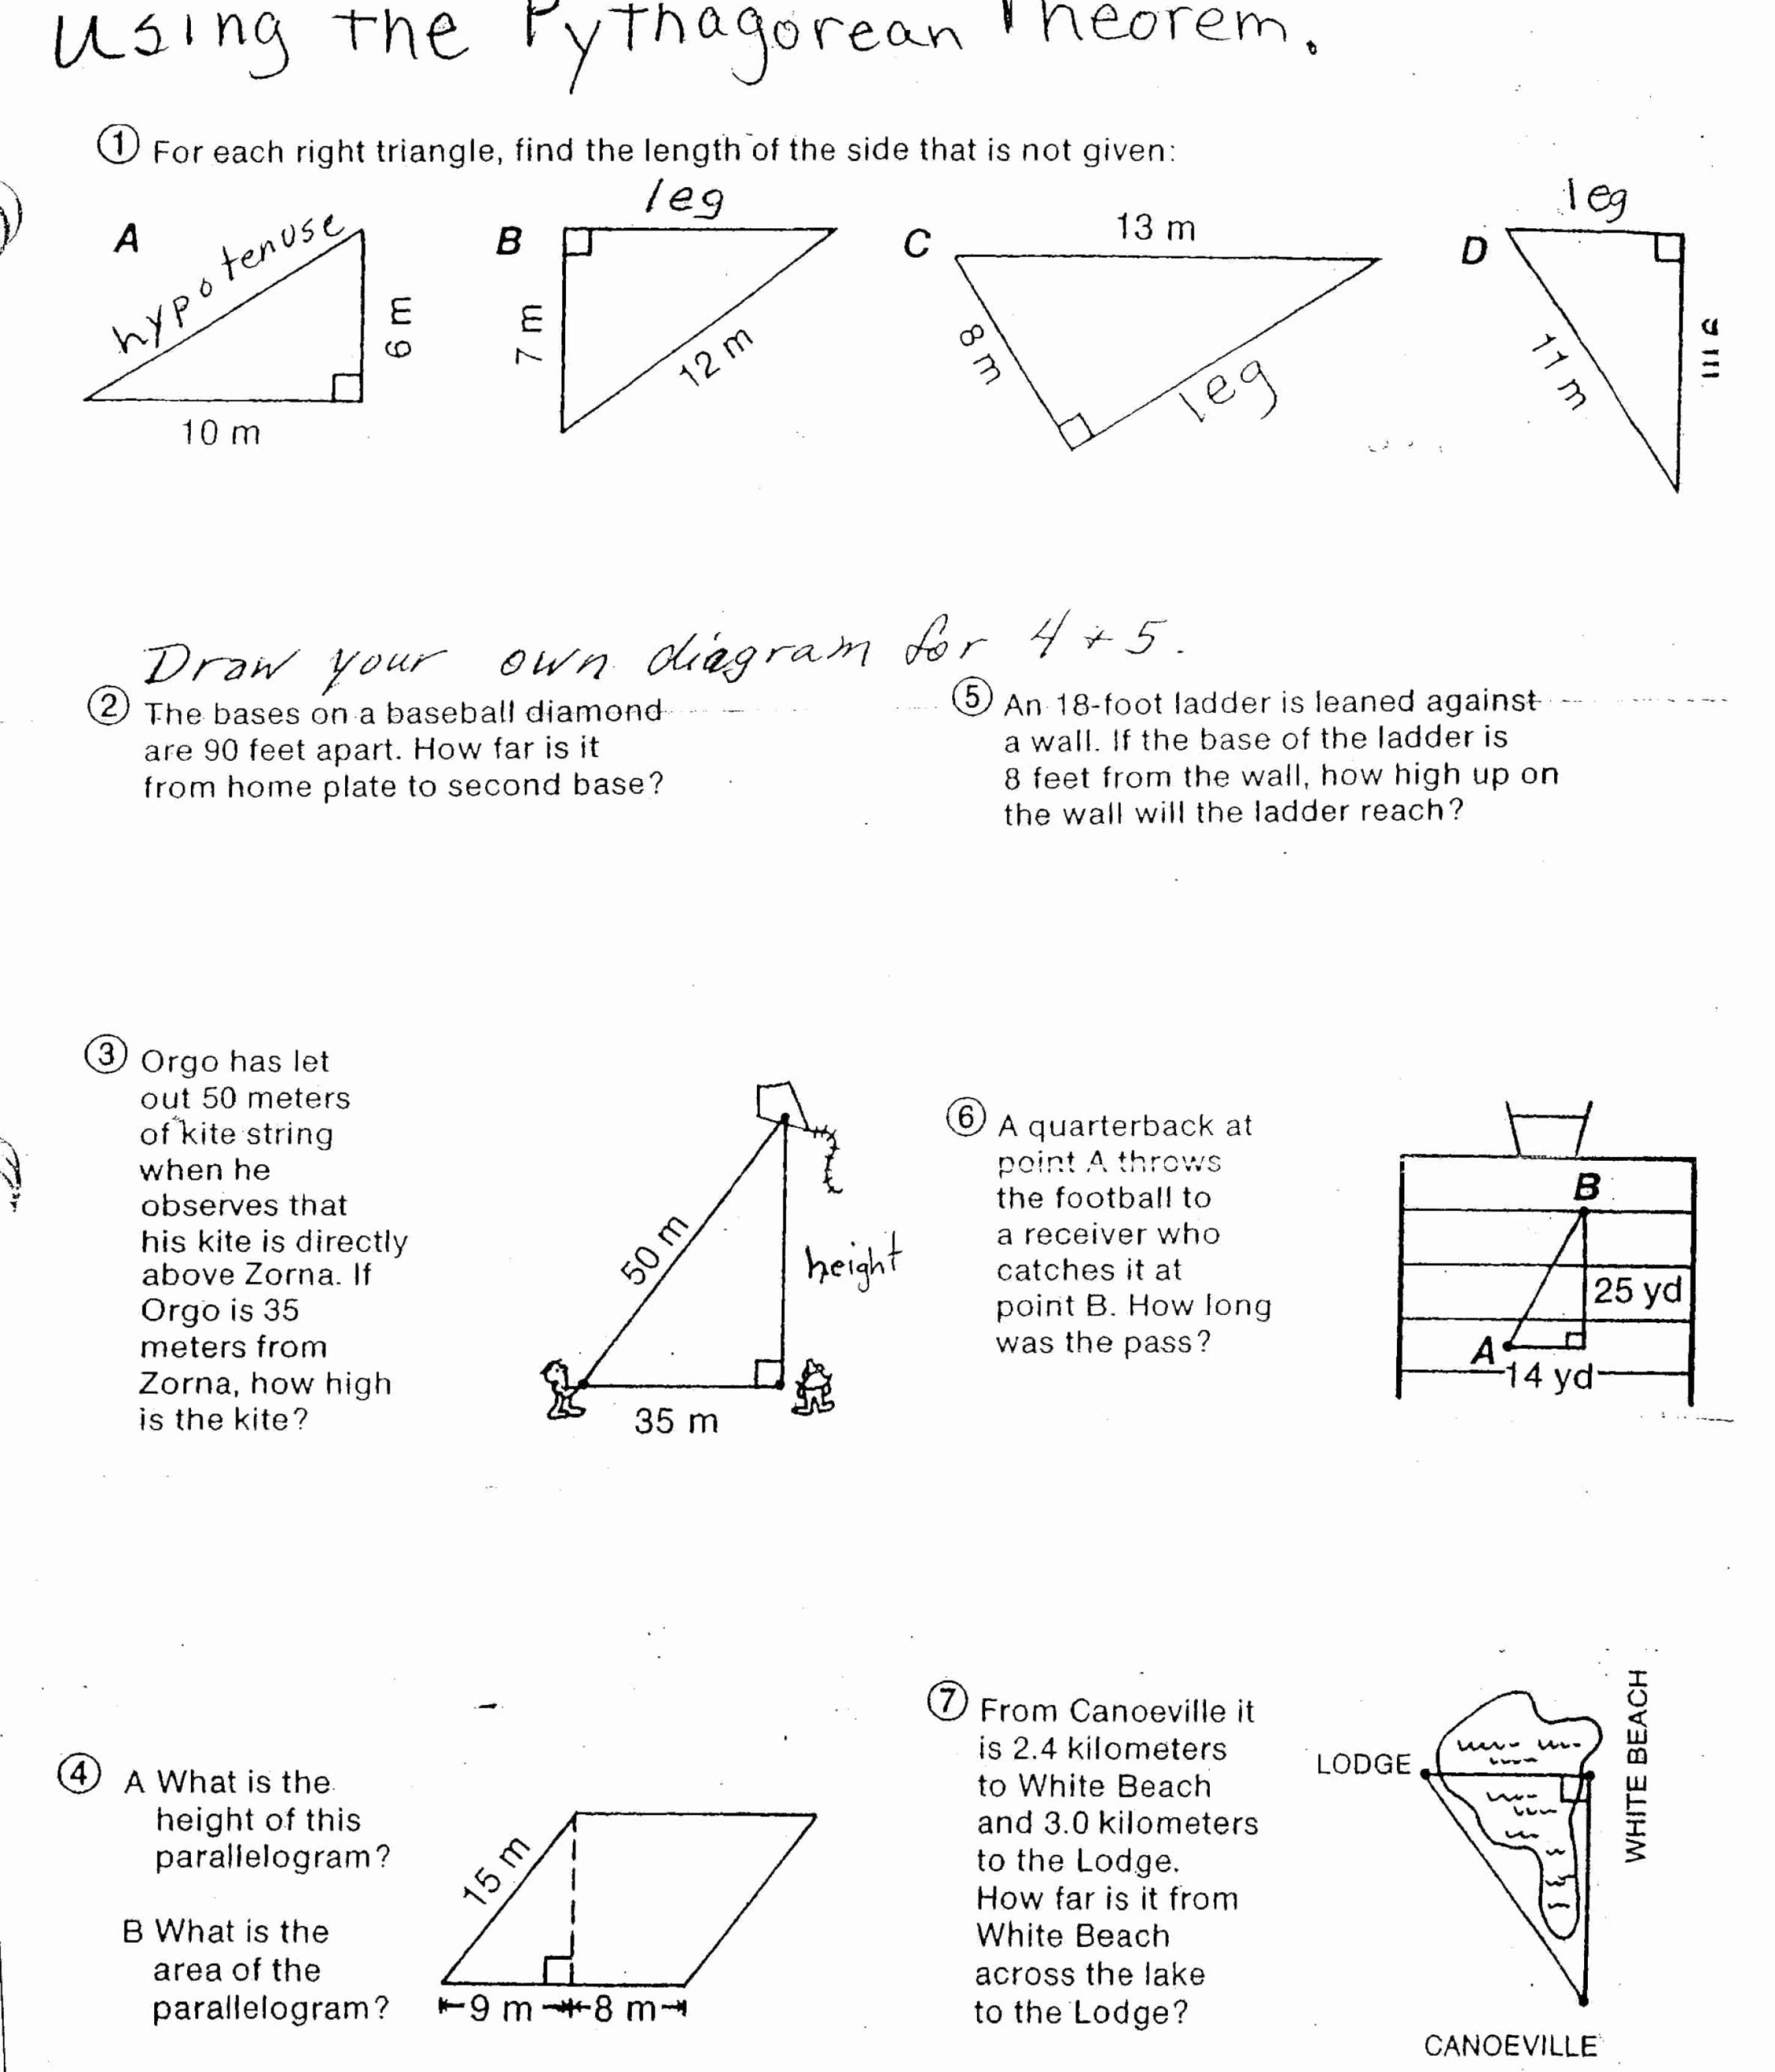 Vector Addition Worksheet with Answers Fresh Resultant Vector Worksheet with Answers